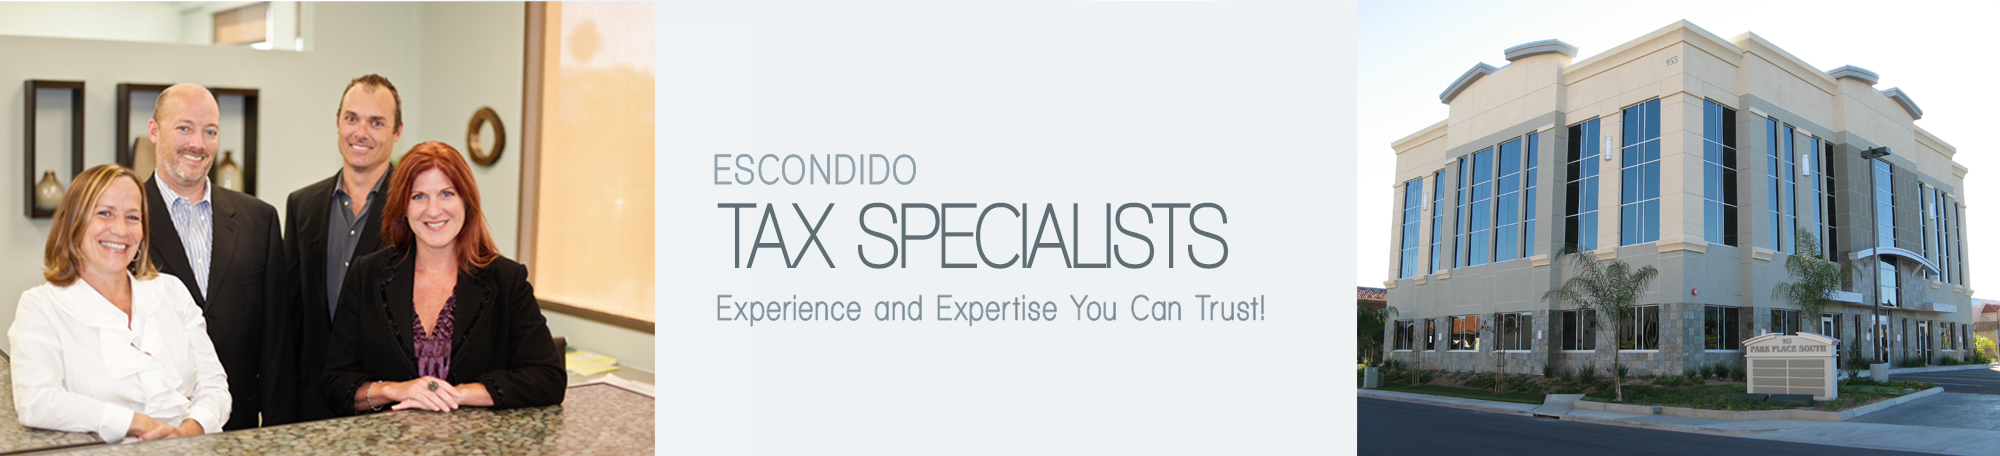 escondido-tax-specialists